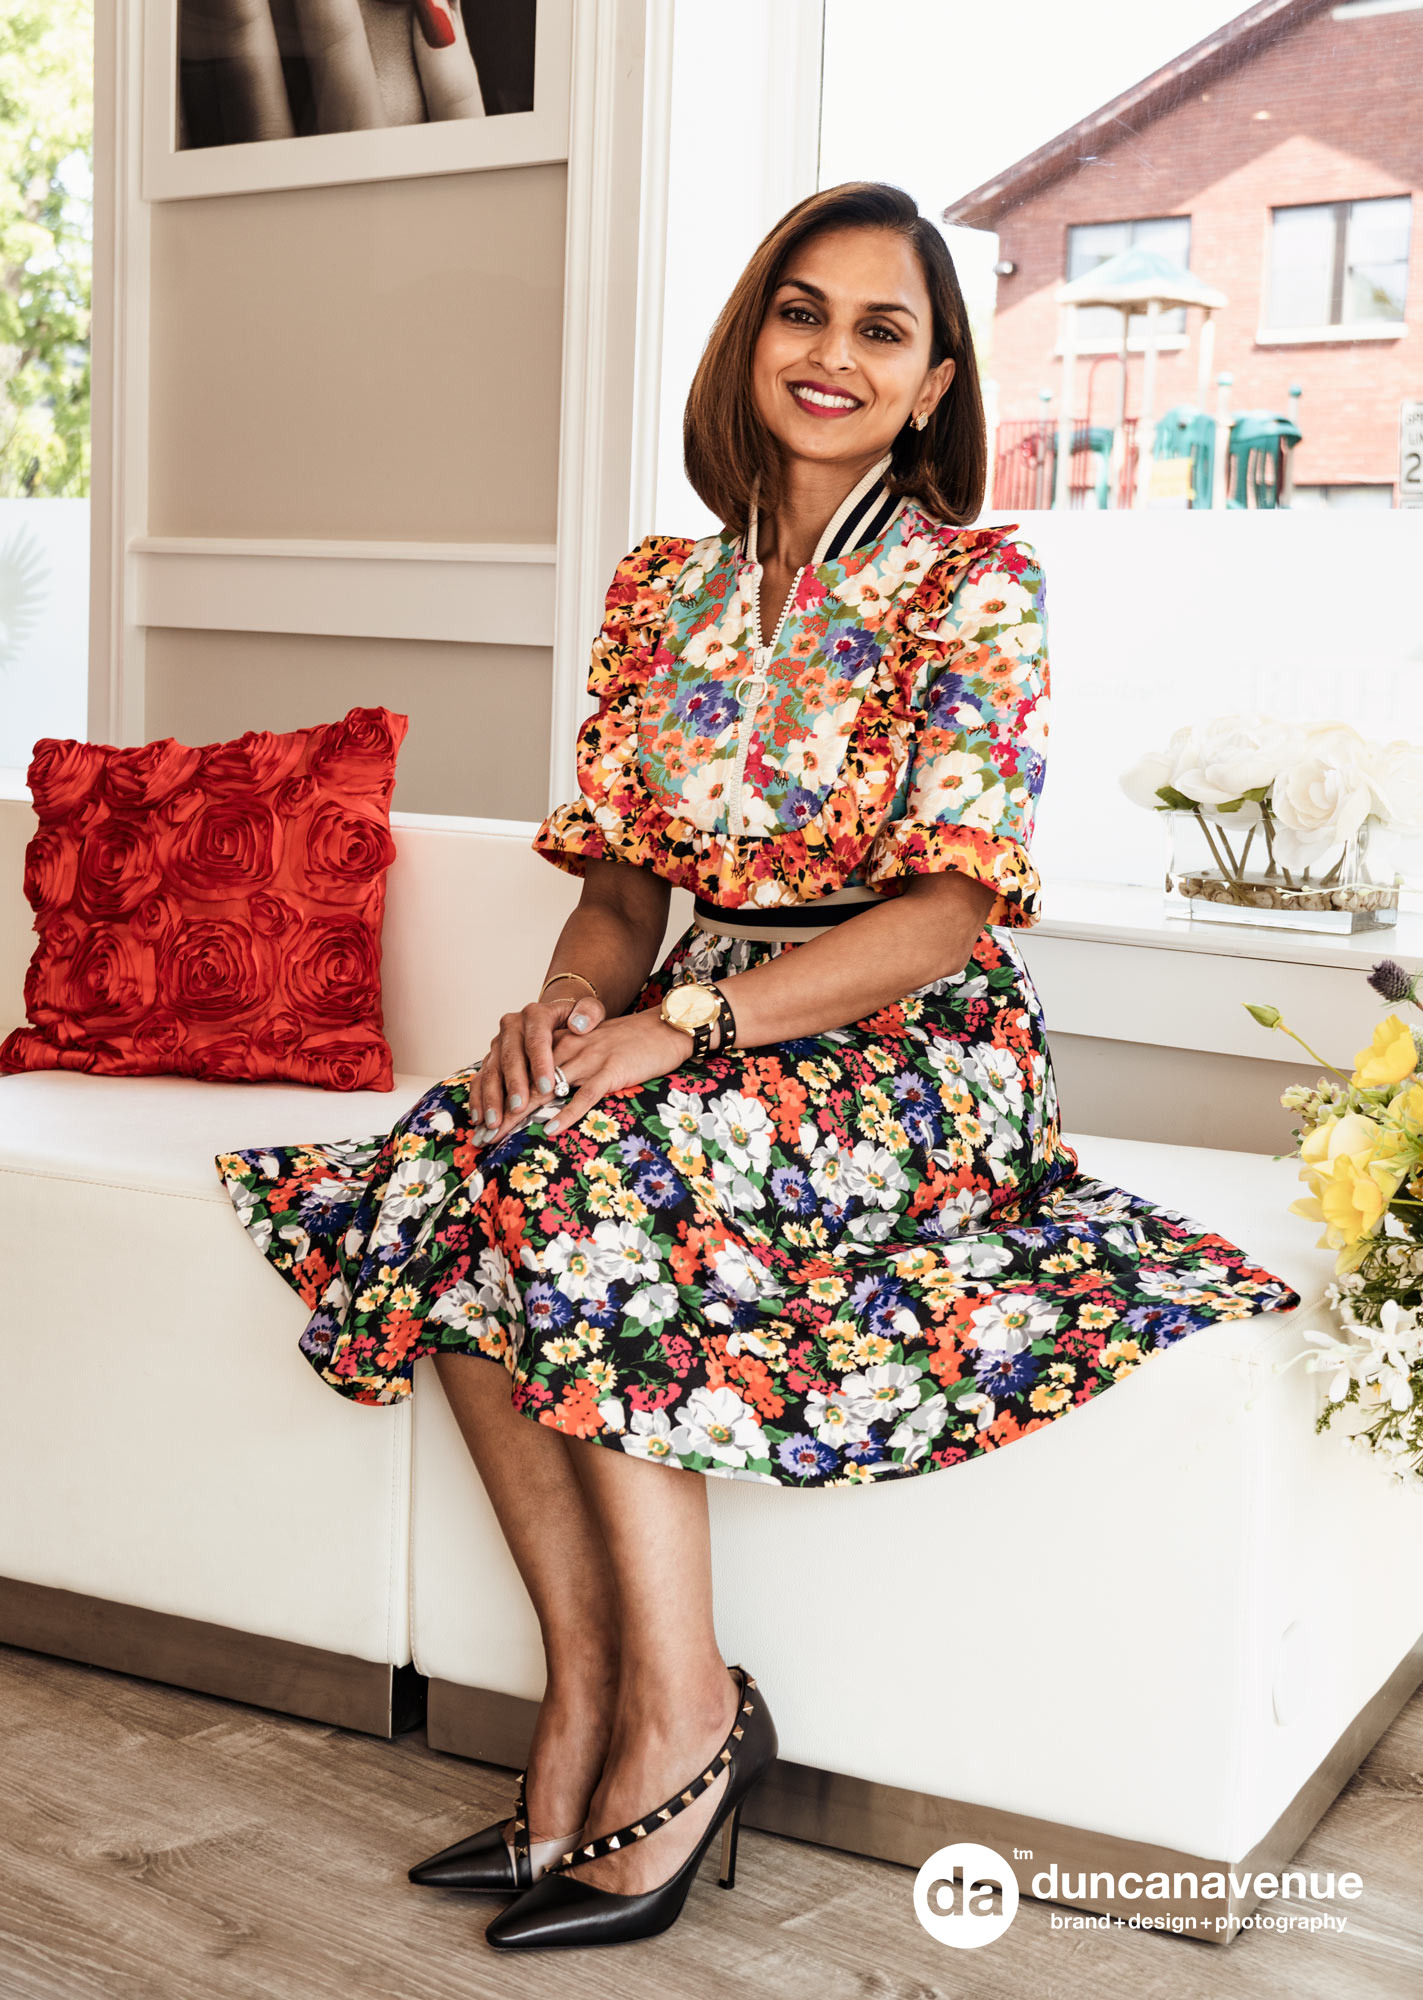 Dr. Zainab Mogul-Ashraf for the Hudson Valley Style Magazine - Hebe Med Spa Brand and Portrait Photography by Maxwell Alexander / Duncan Avenue Studio